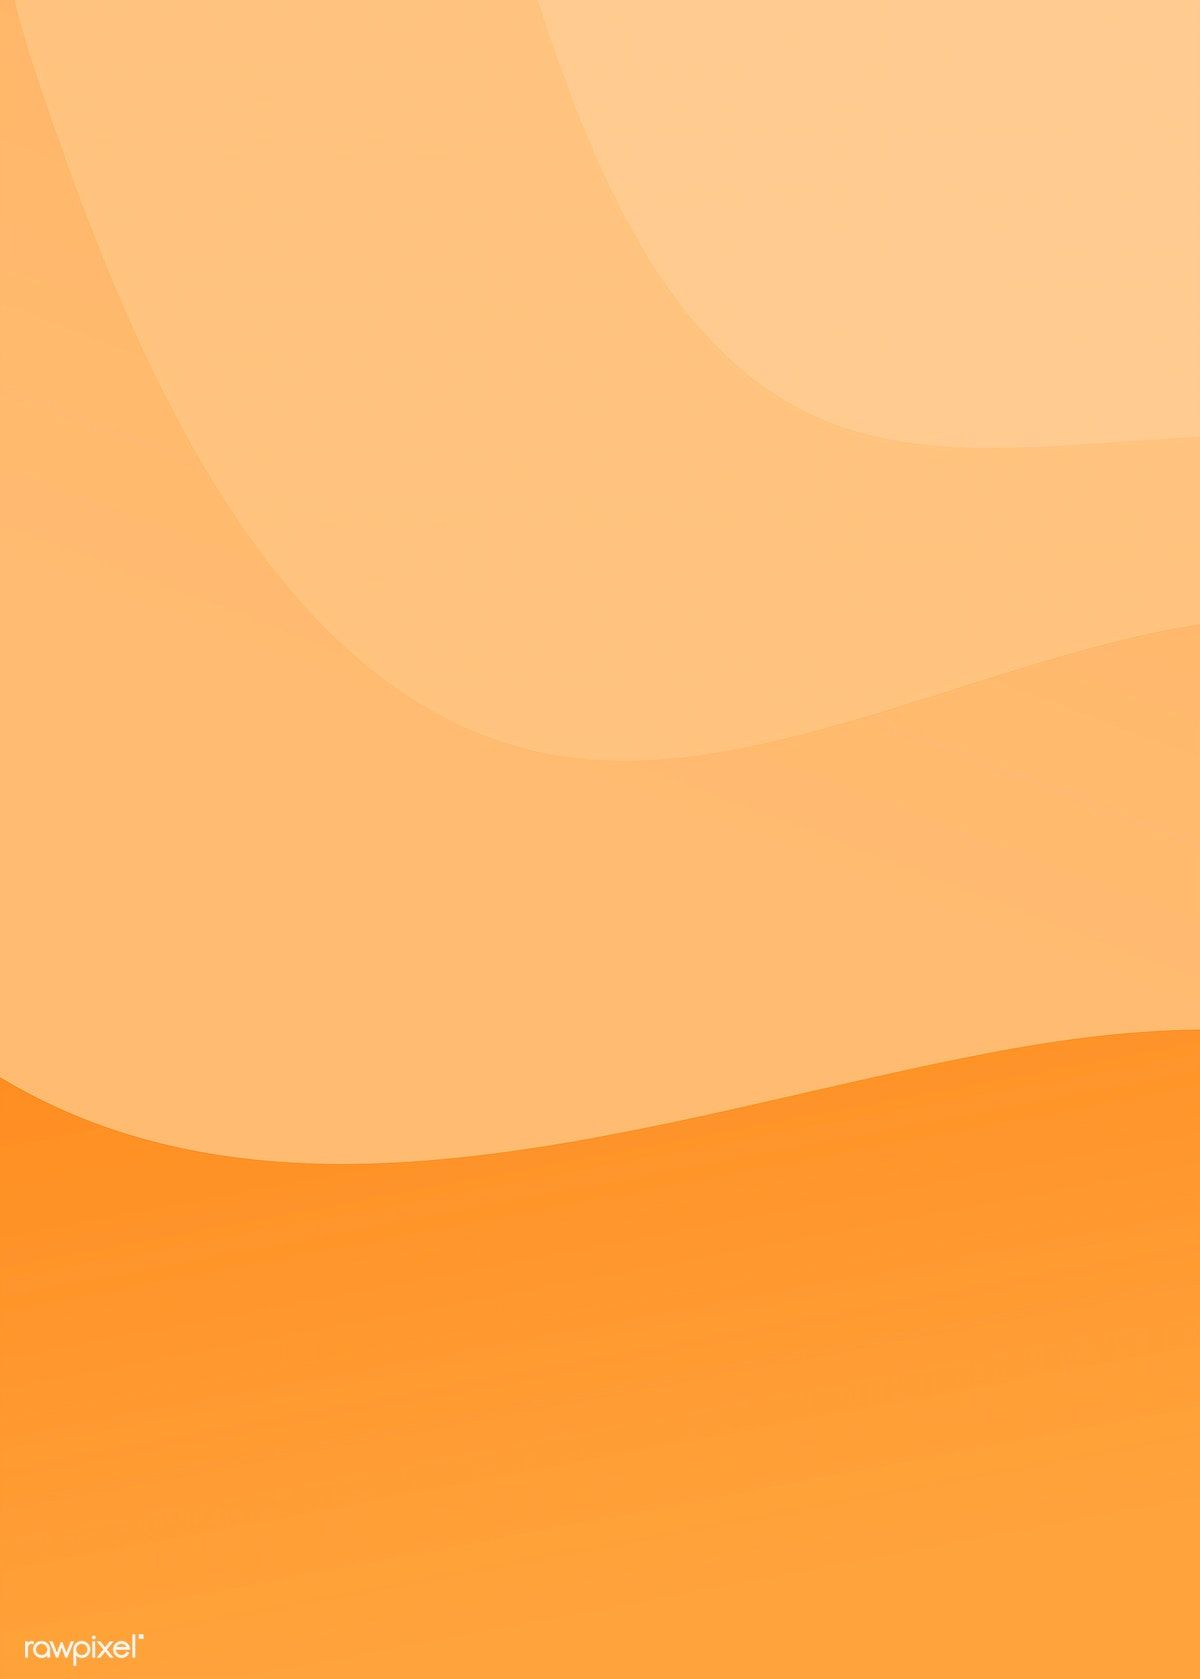 Orange Flowing Abstract Background Vector Free Image By Rawpixel Com Aum Orange Wallpaper Orange Aesthetic Abstract Backgrounds